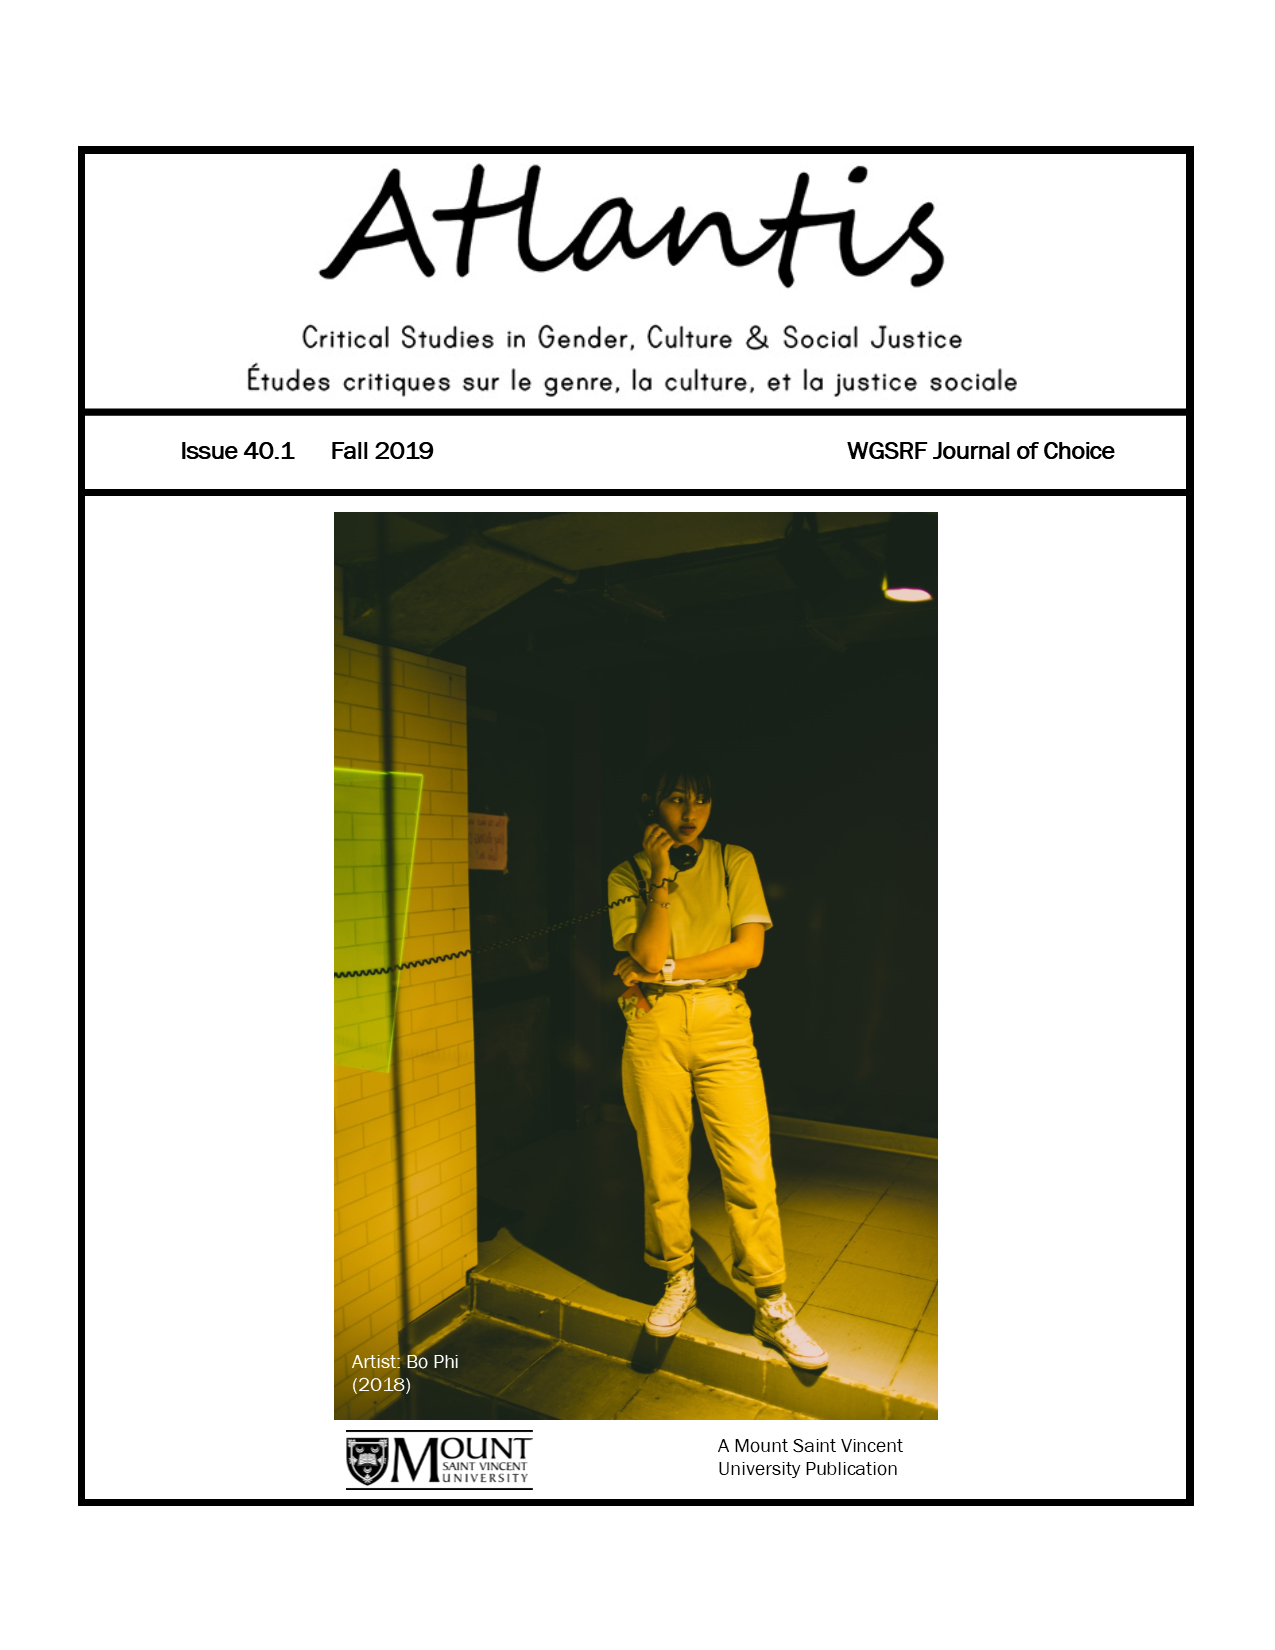 Atlantis: Critical Studies in Gender, Culture & Social Justice. (Cover image shows a woman speaking on a pay phone in darkness.)